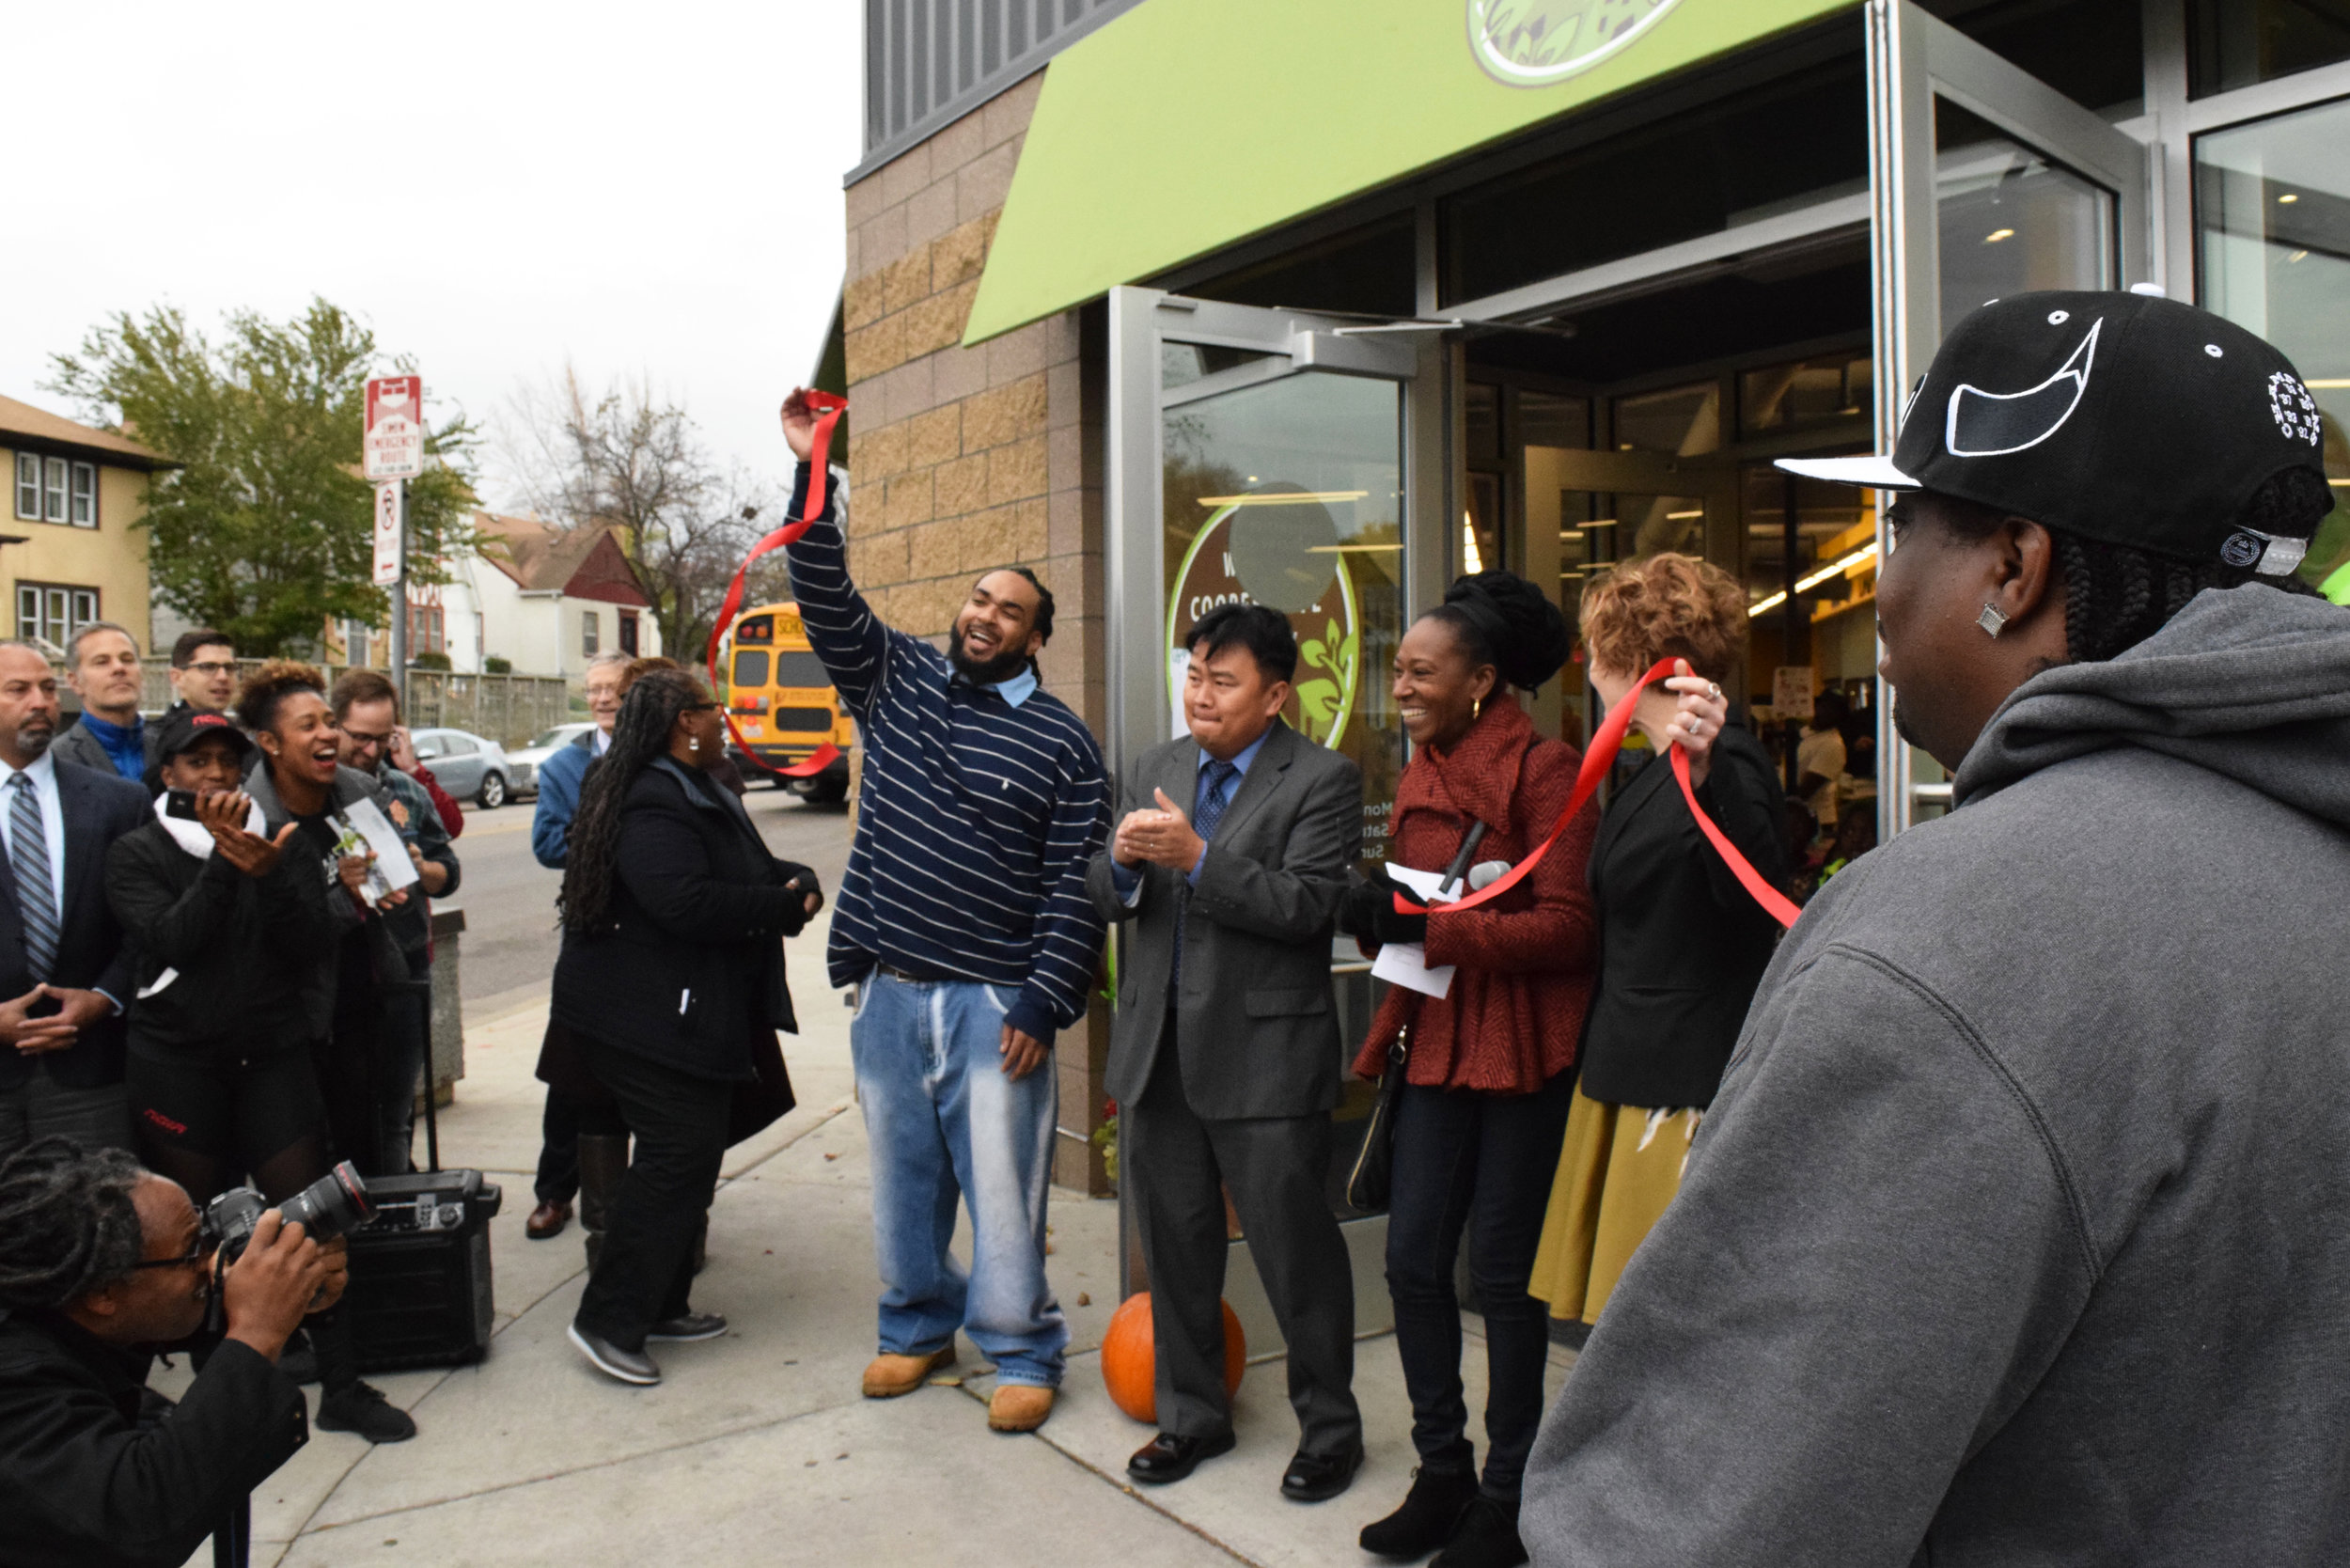 Wirth Co-op general manager Winston Bell (left) celebrated the co-op's grand opening alongside City Council Member Blong Yang, Co-op Board VP Teasha Reid,and Mayor Betsy Hodges.The event was attended by over 50 people. Photo by Cirien Saadeh .